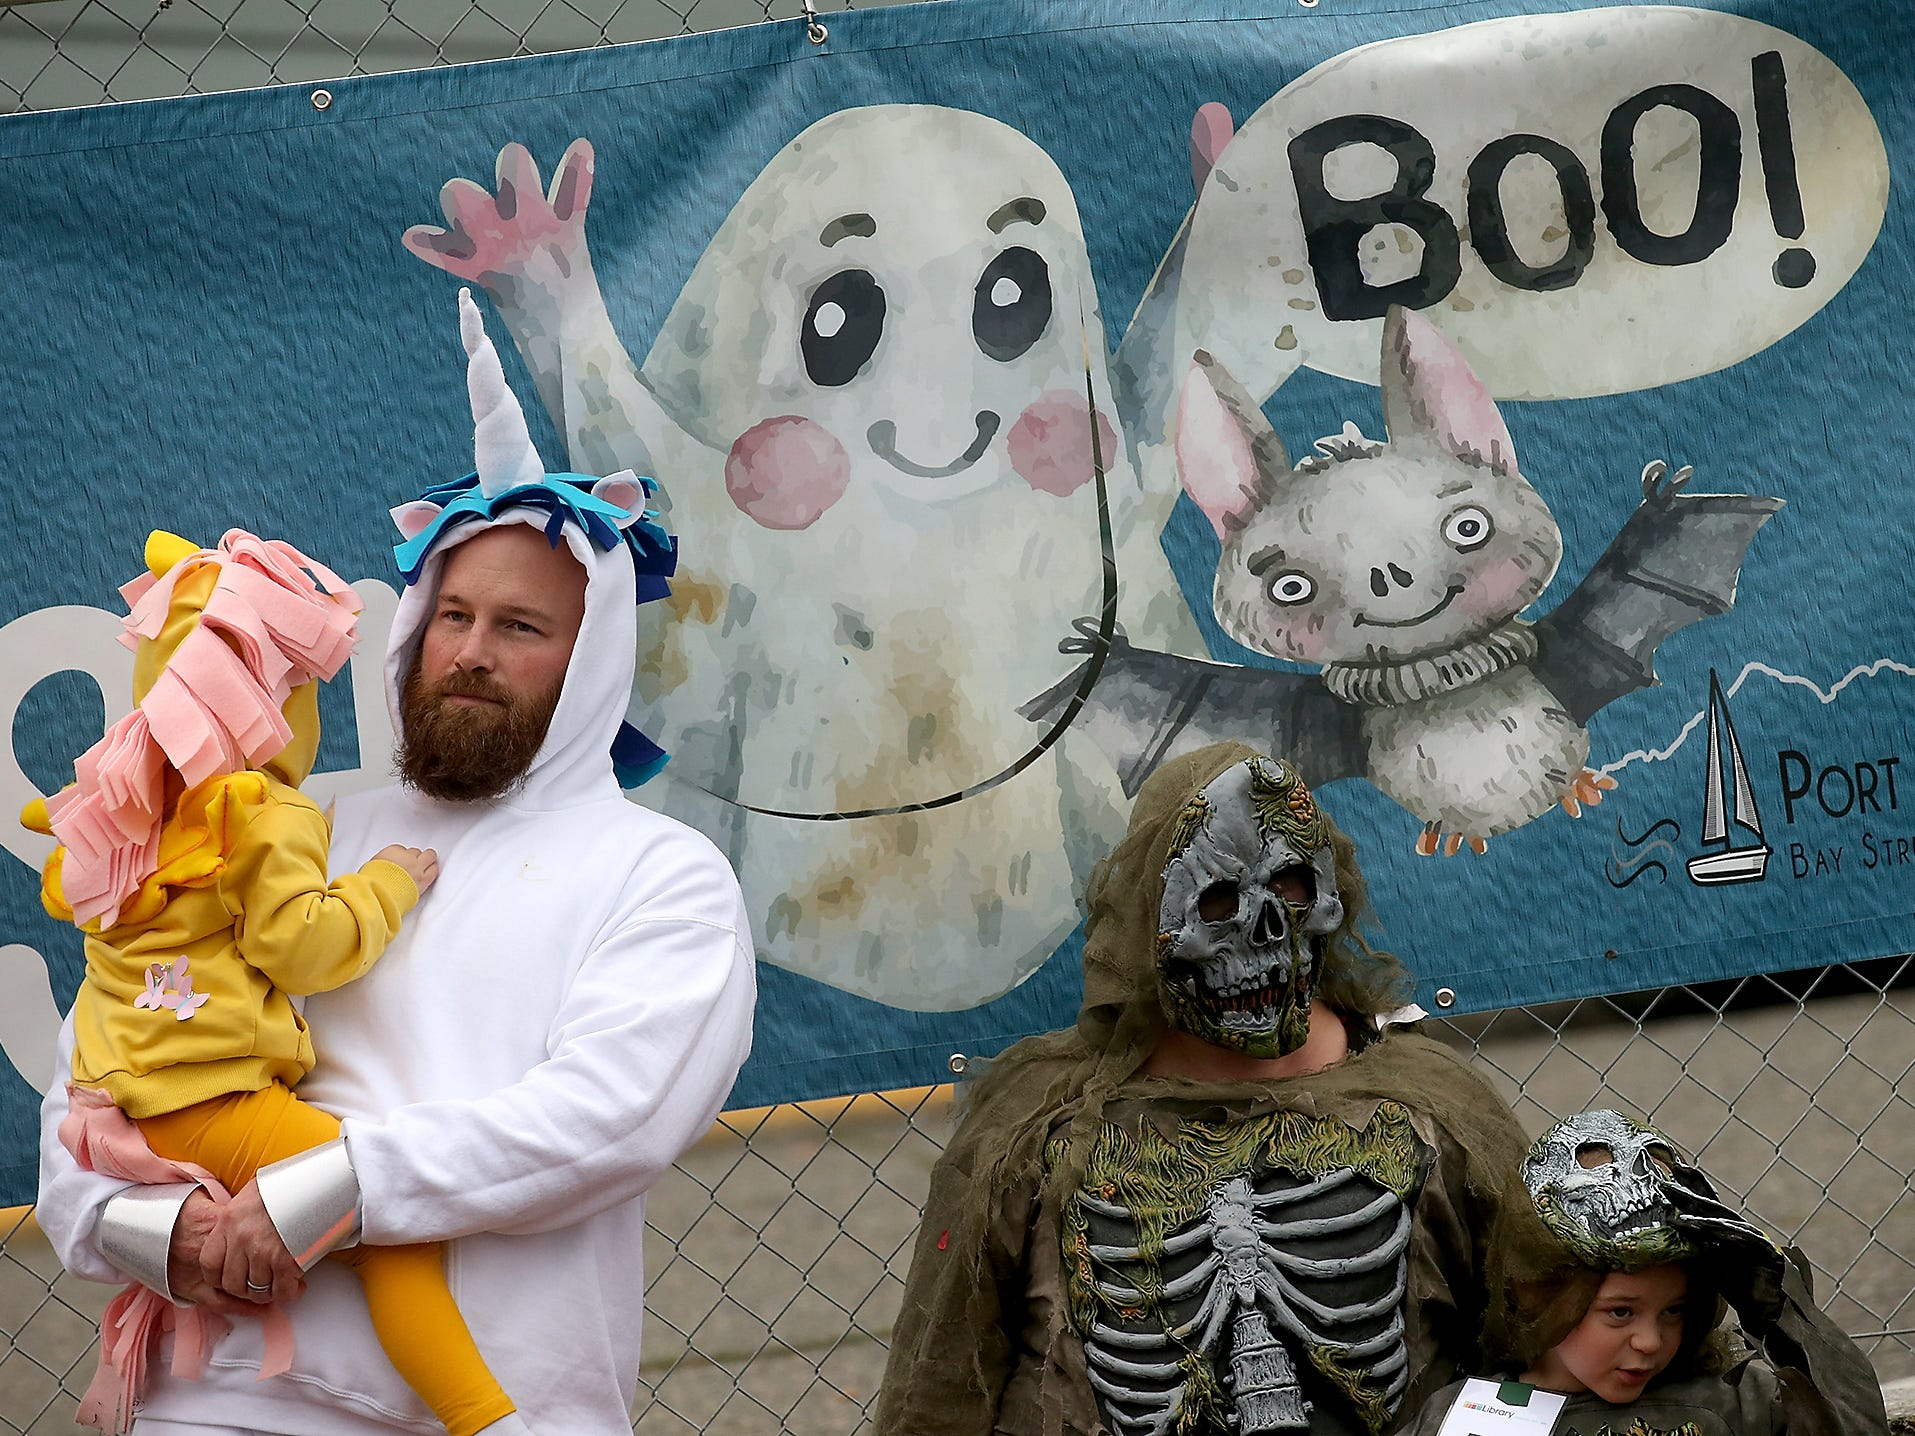 Port Orchard's Spookfest on Saturday, October 27, 2018.